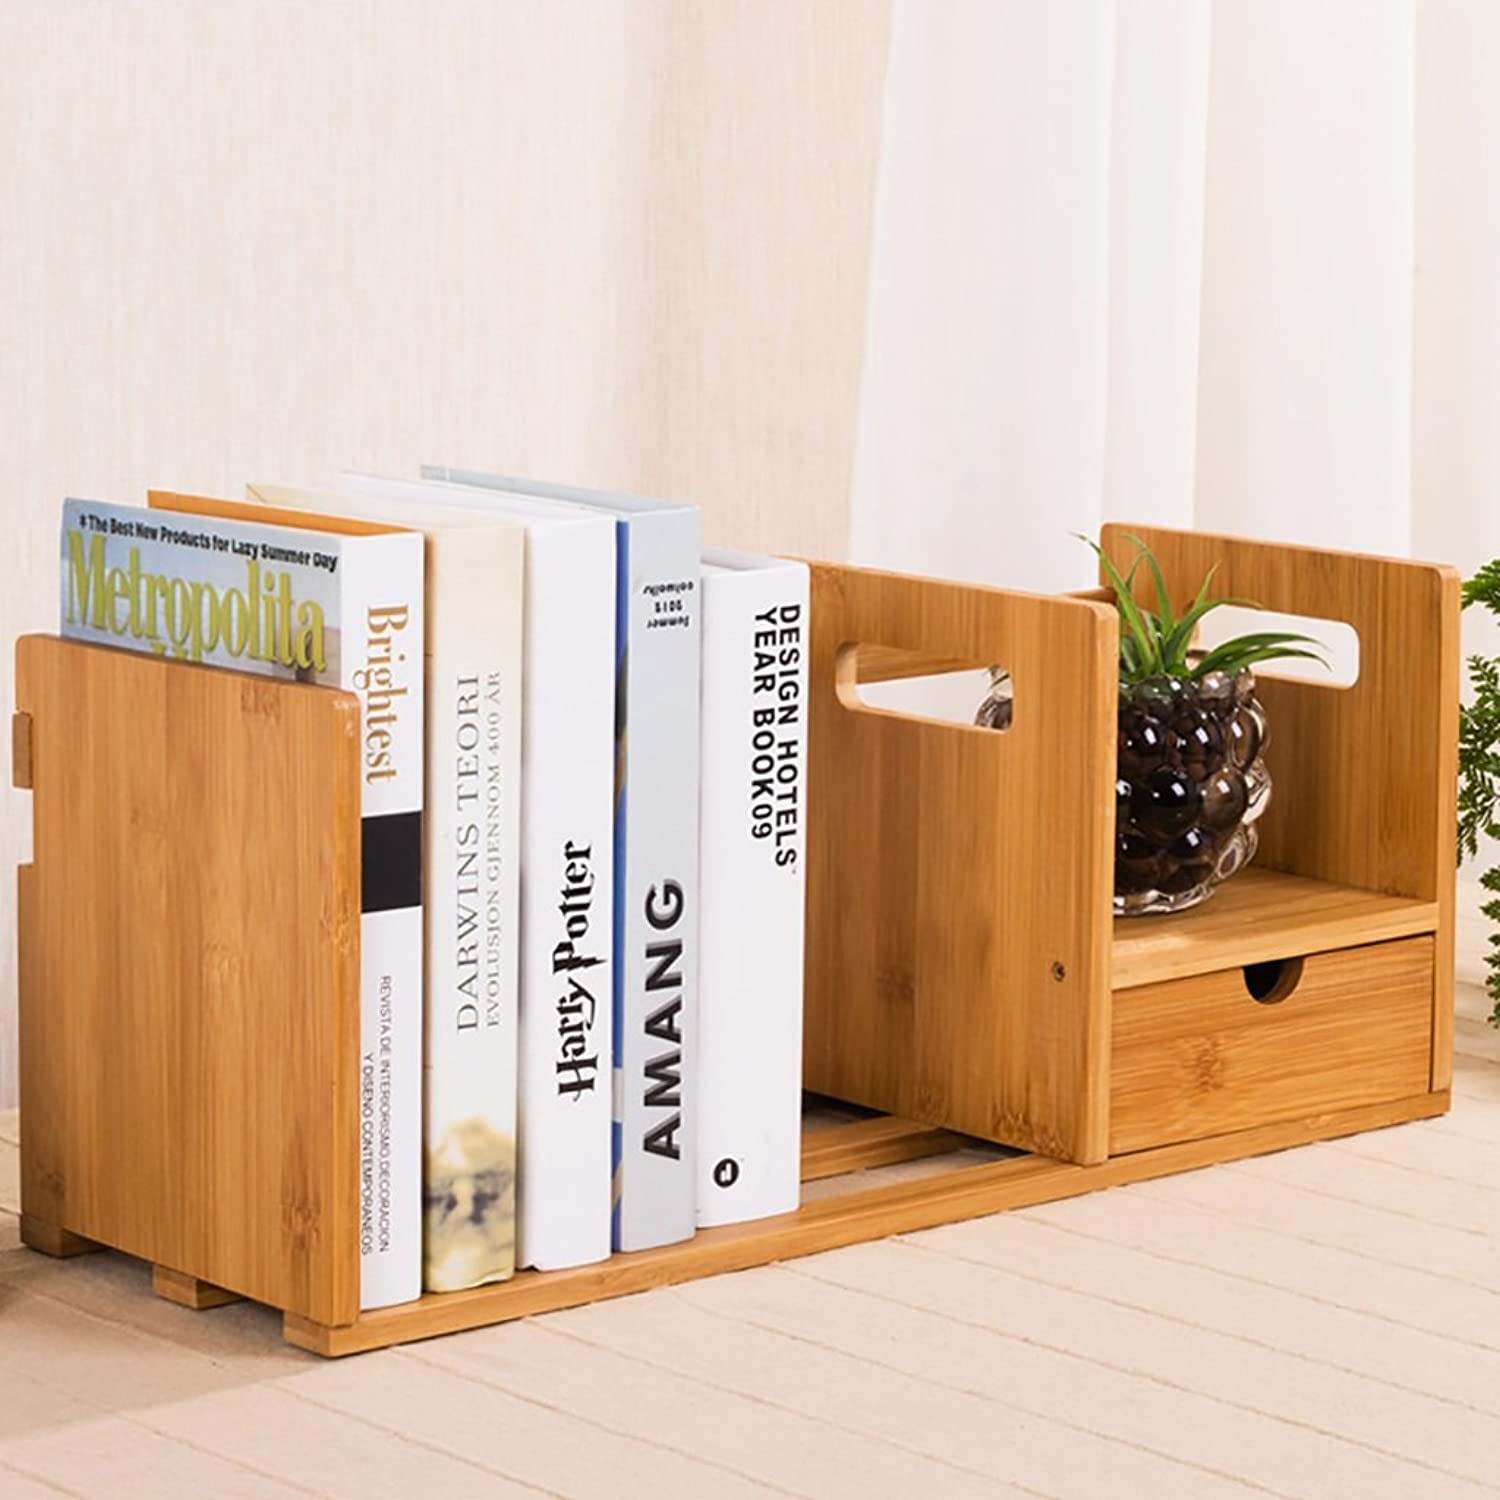 Desk Shelves Racks Small Desk Small Bookshelf Dormitory Desk Storage Shelves Lapdesks (color   C)